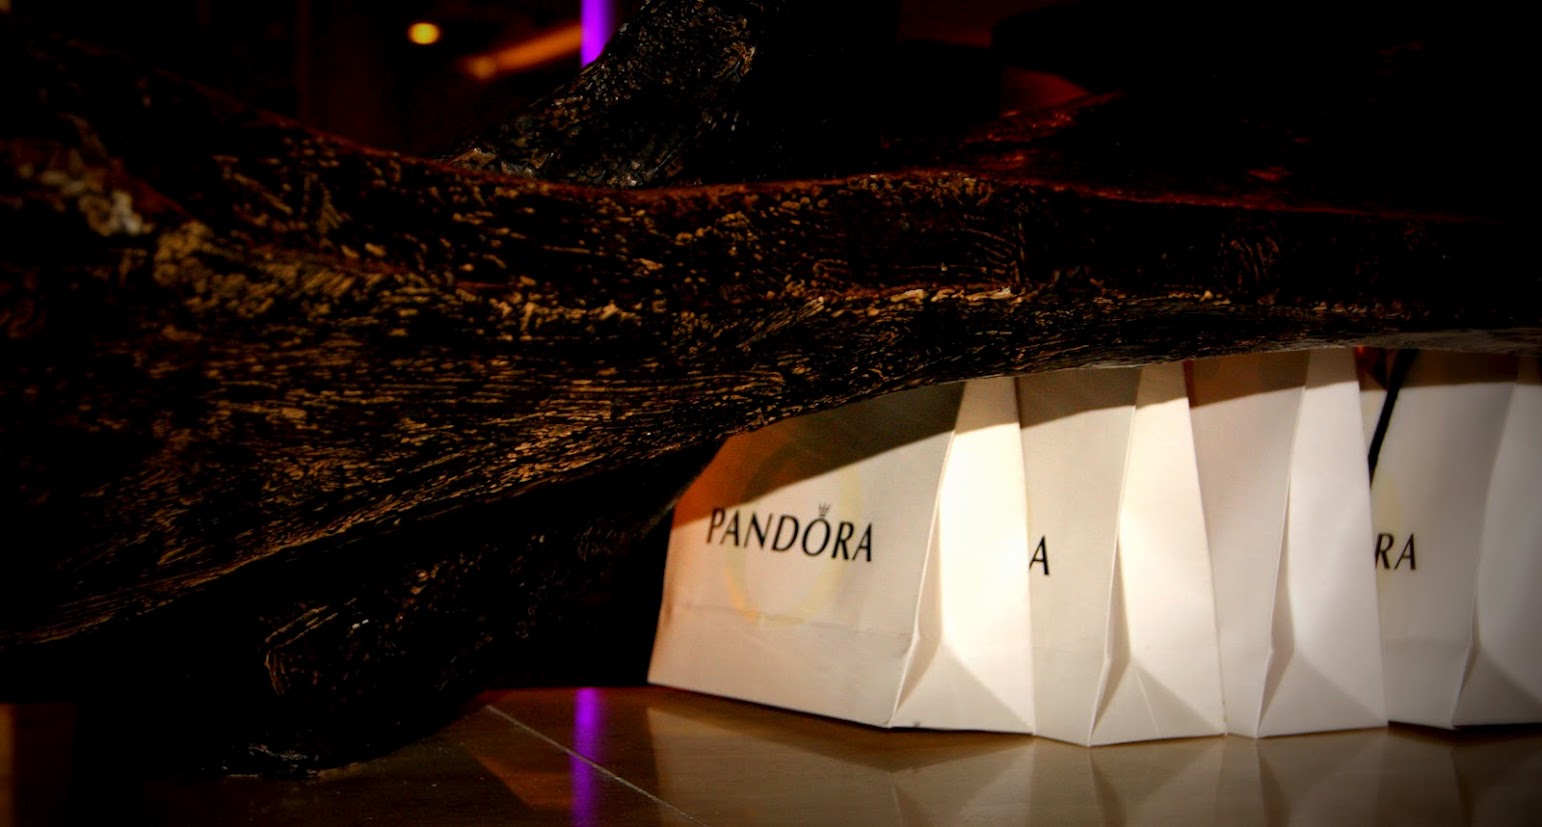 Pandora@Lux11 – Spring Welcome 2013